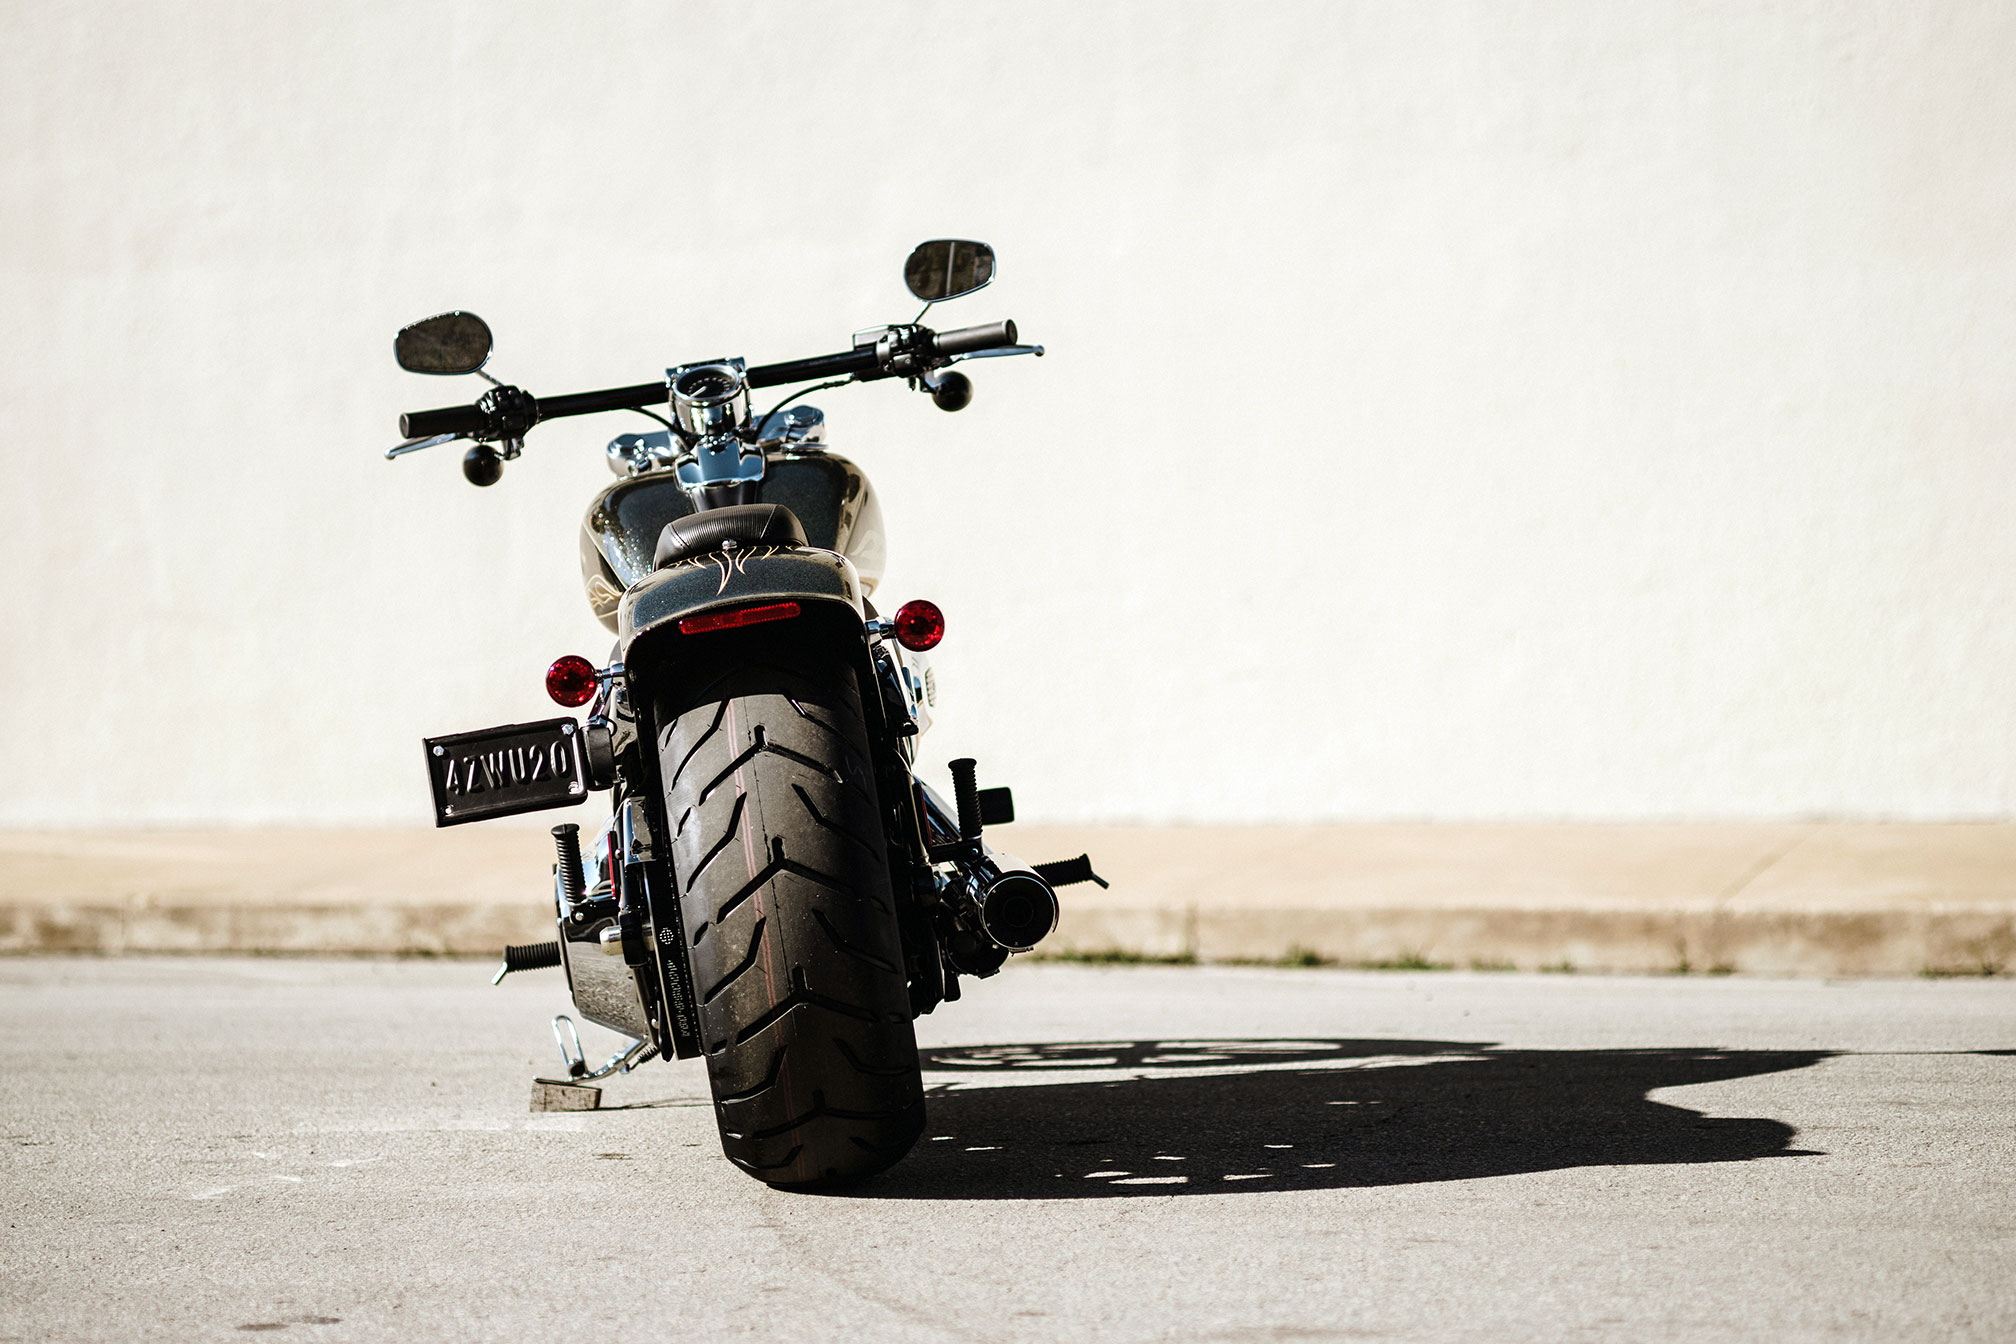 2016 harley-davidson softail breakout review